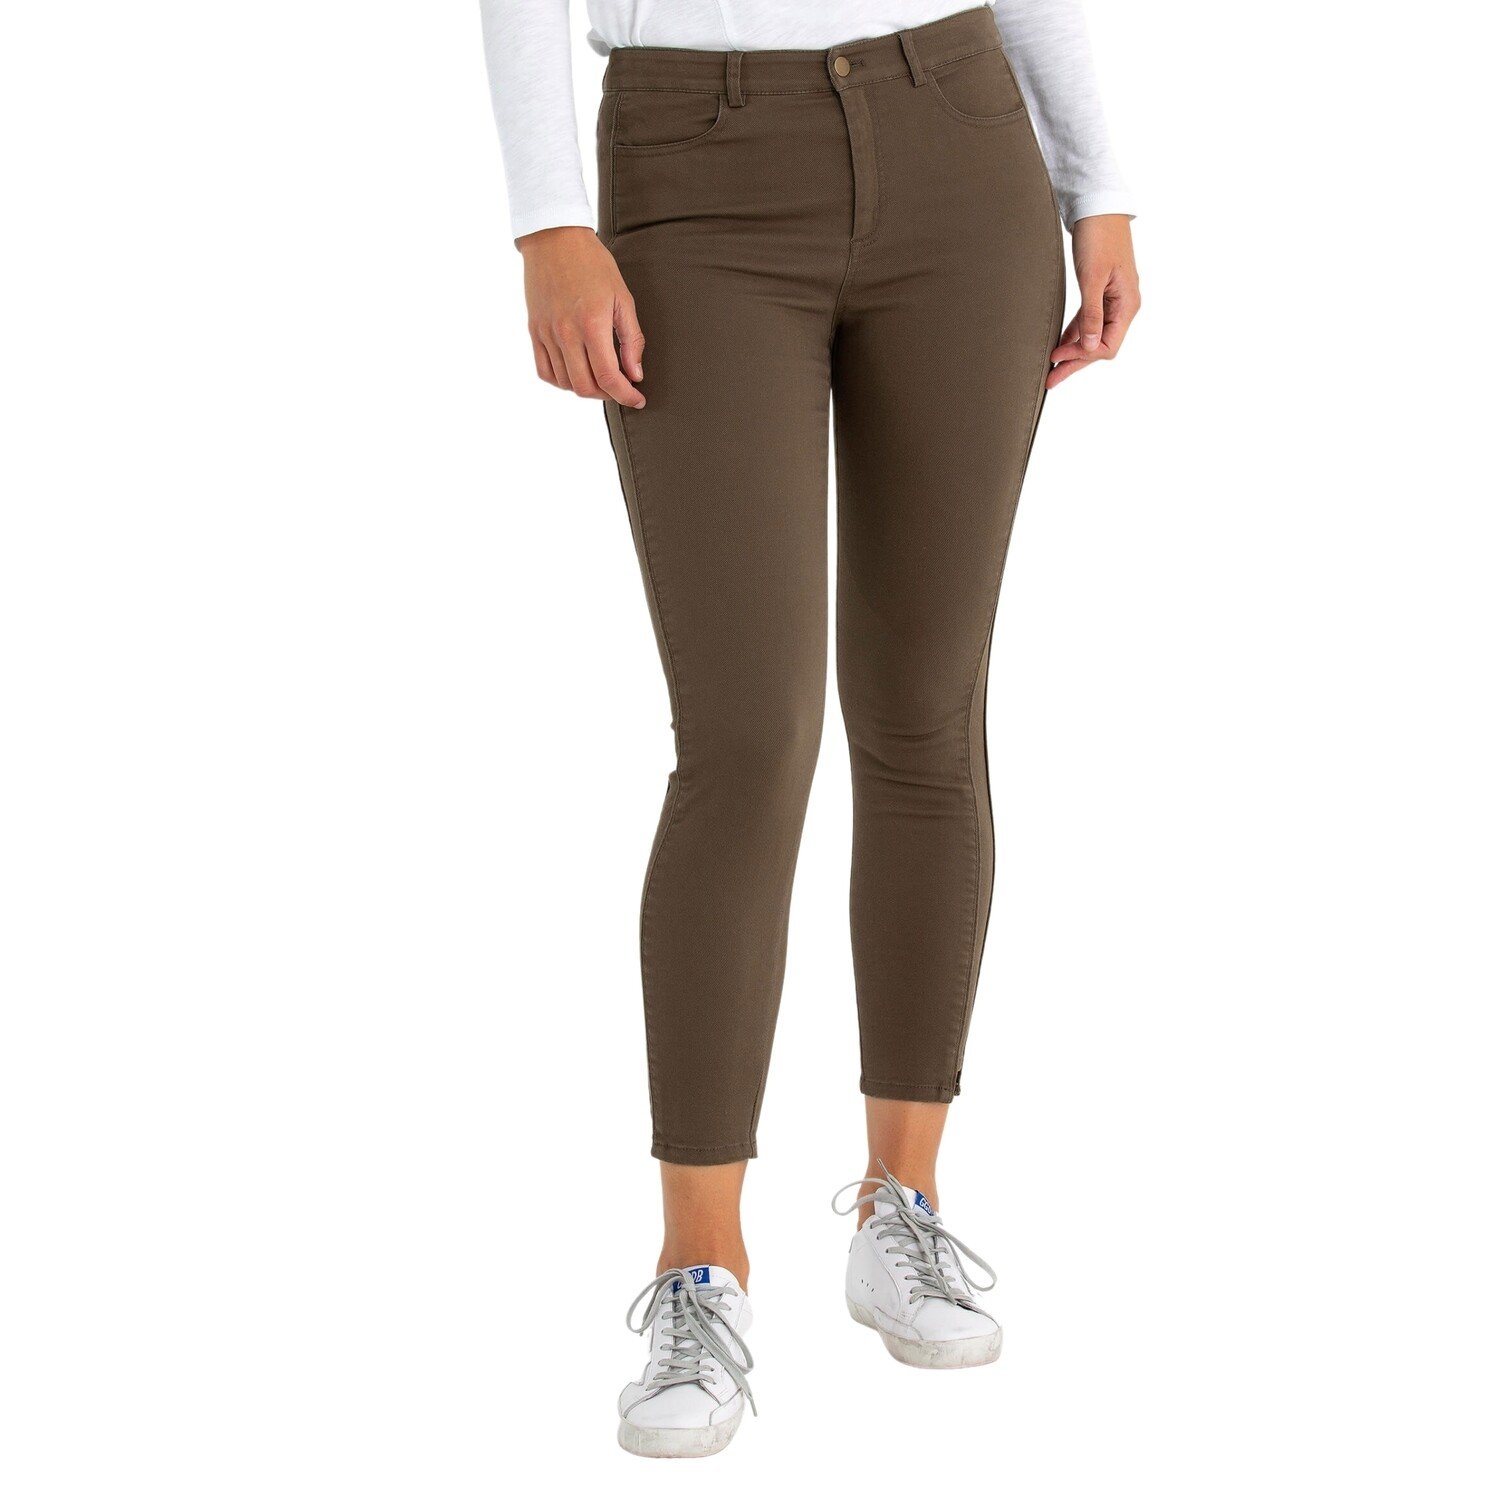 Panelled Pants by Marco Polo